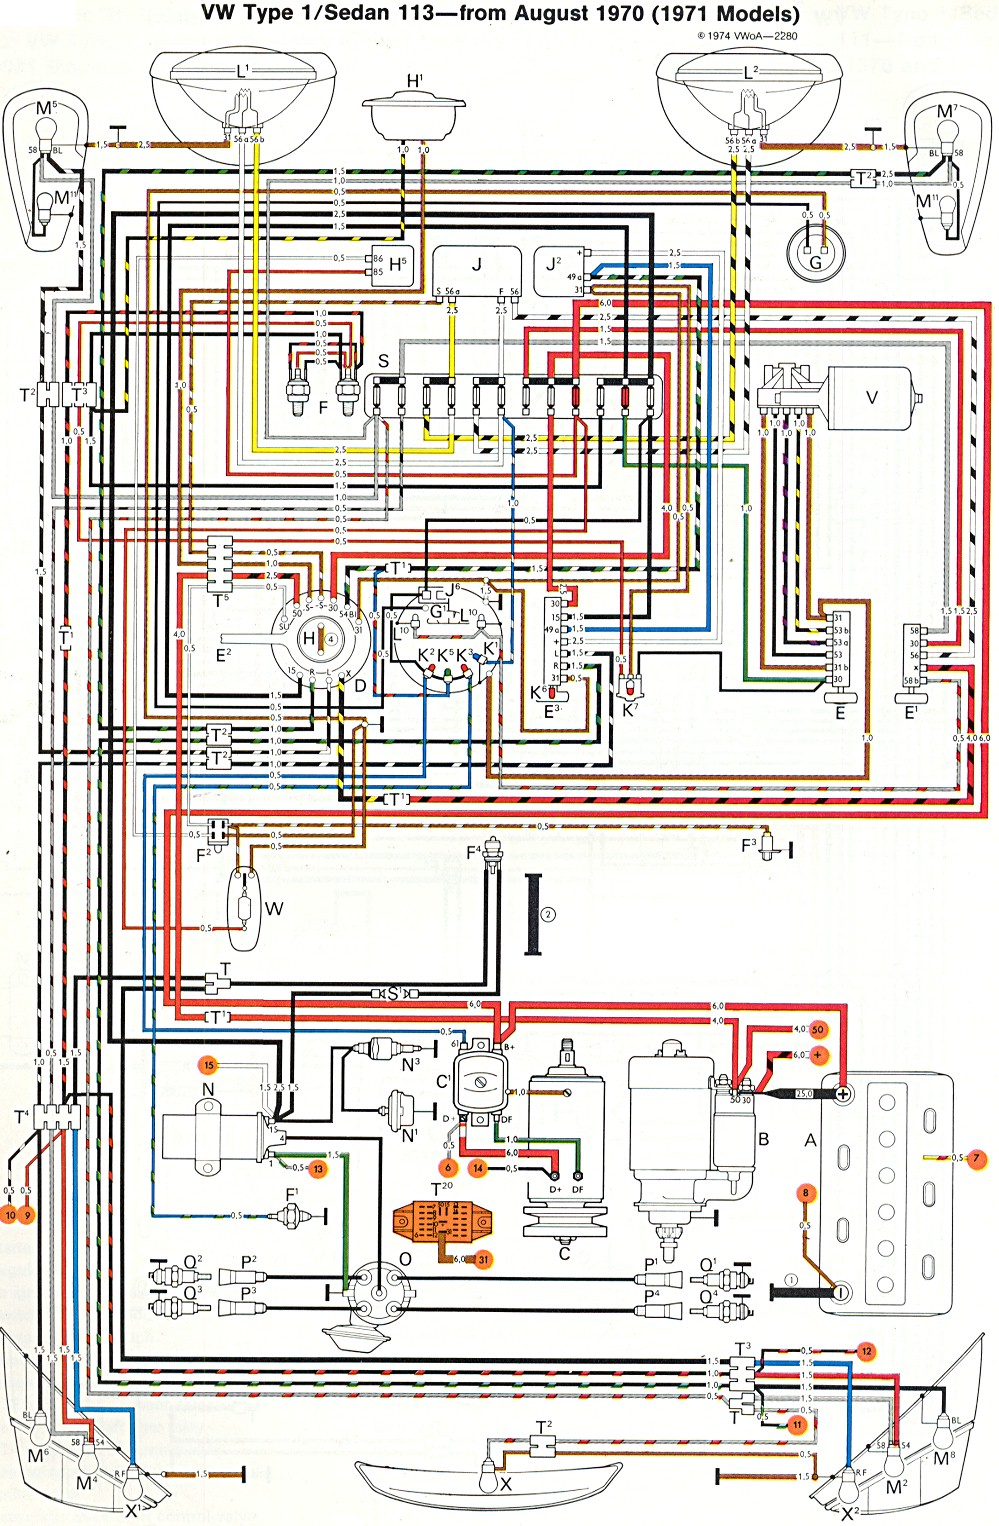 bug_super_71 1971 super beetle wiring diagram thegoldenbug com 1972 volkswagen super beetle wiring harness at mifinder.co